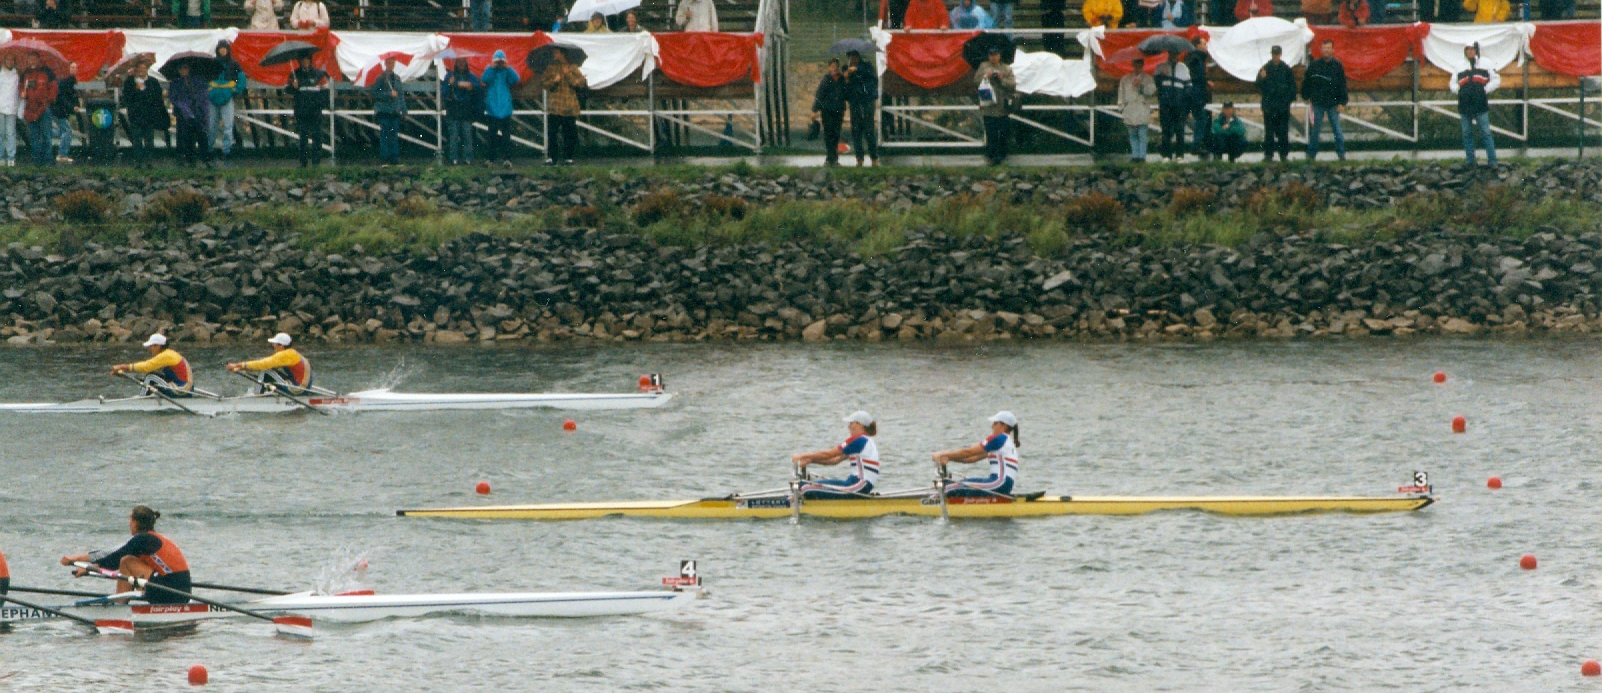 women's double sculls race - GB yellow empacher in lead